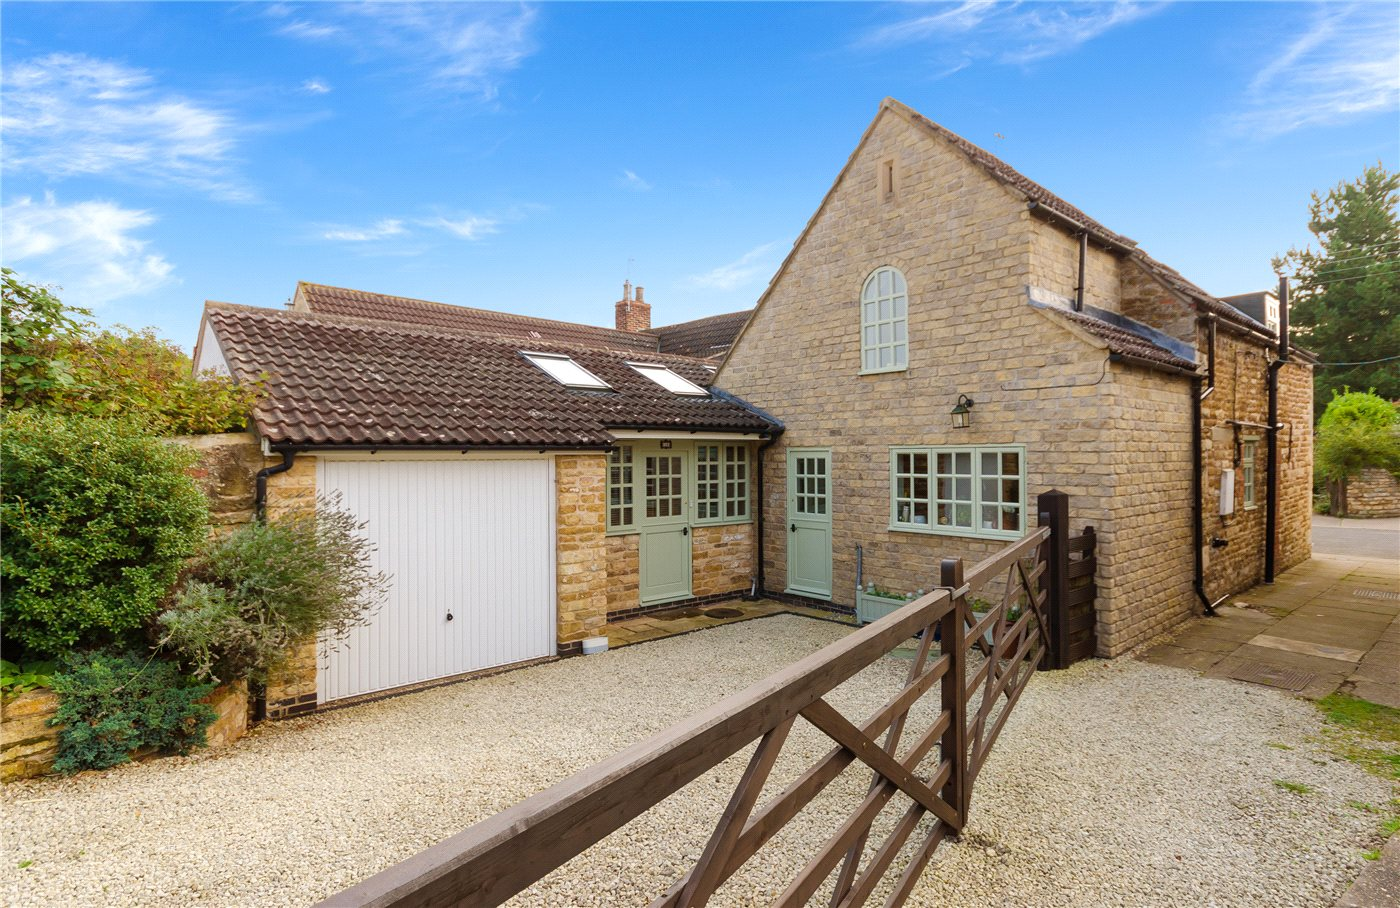 3 Bedrooms House for sale in West Street, Barkston, Grantham, NG32